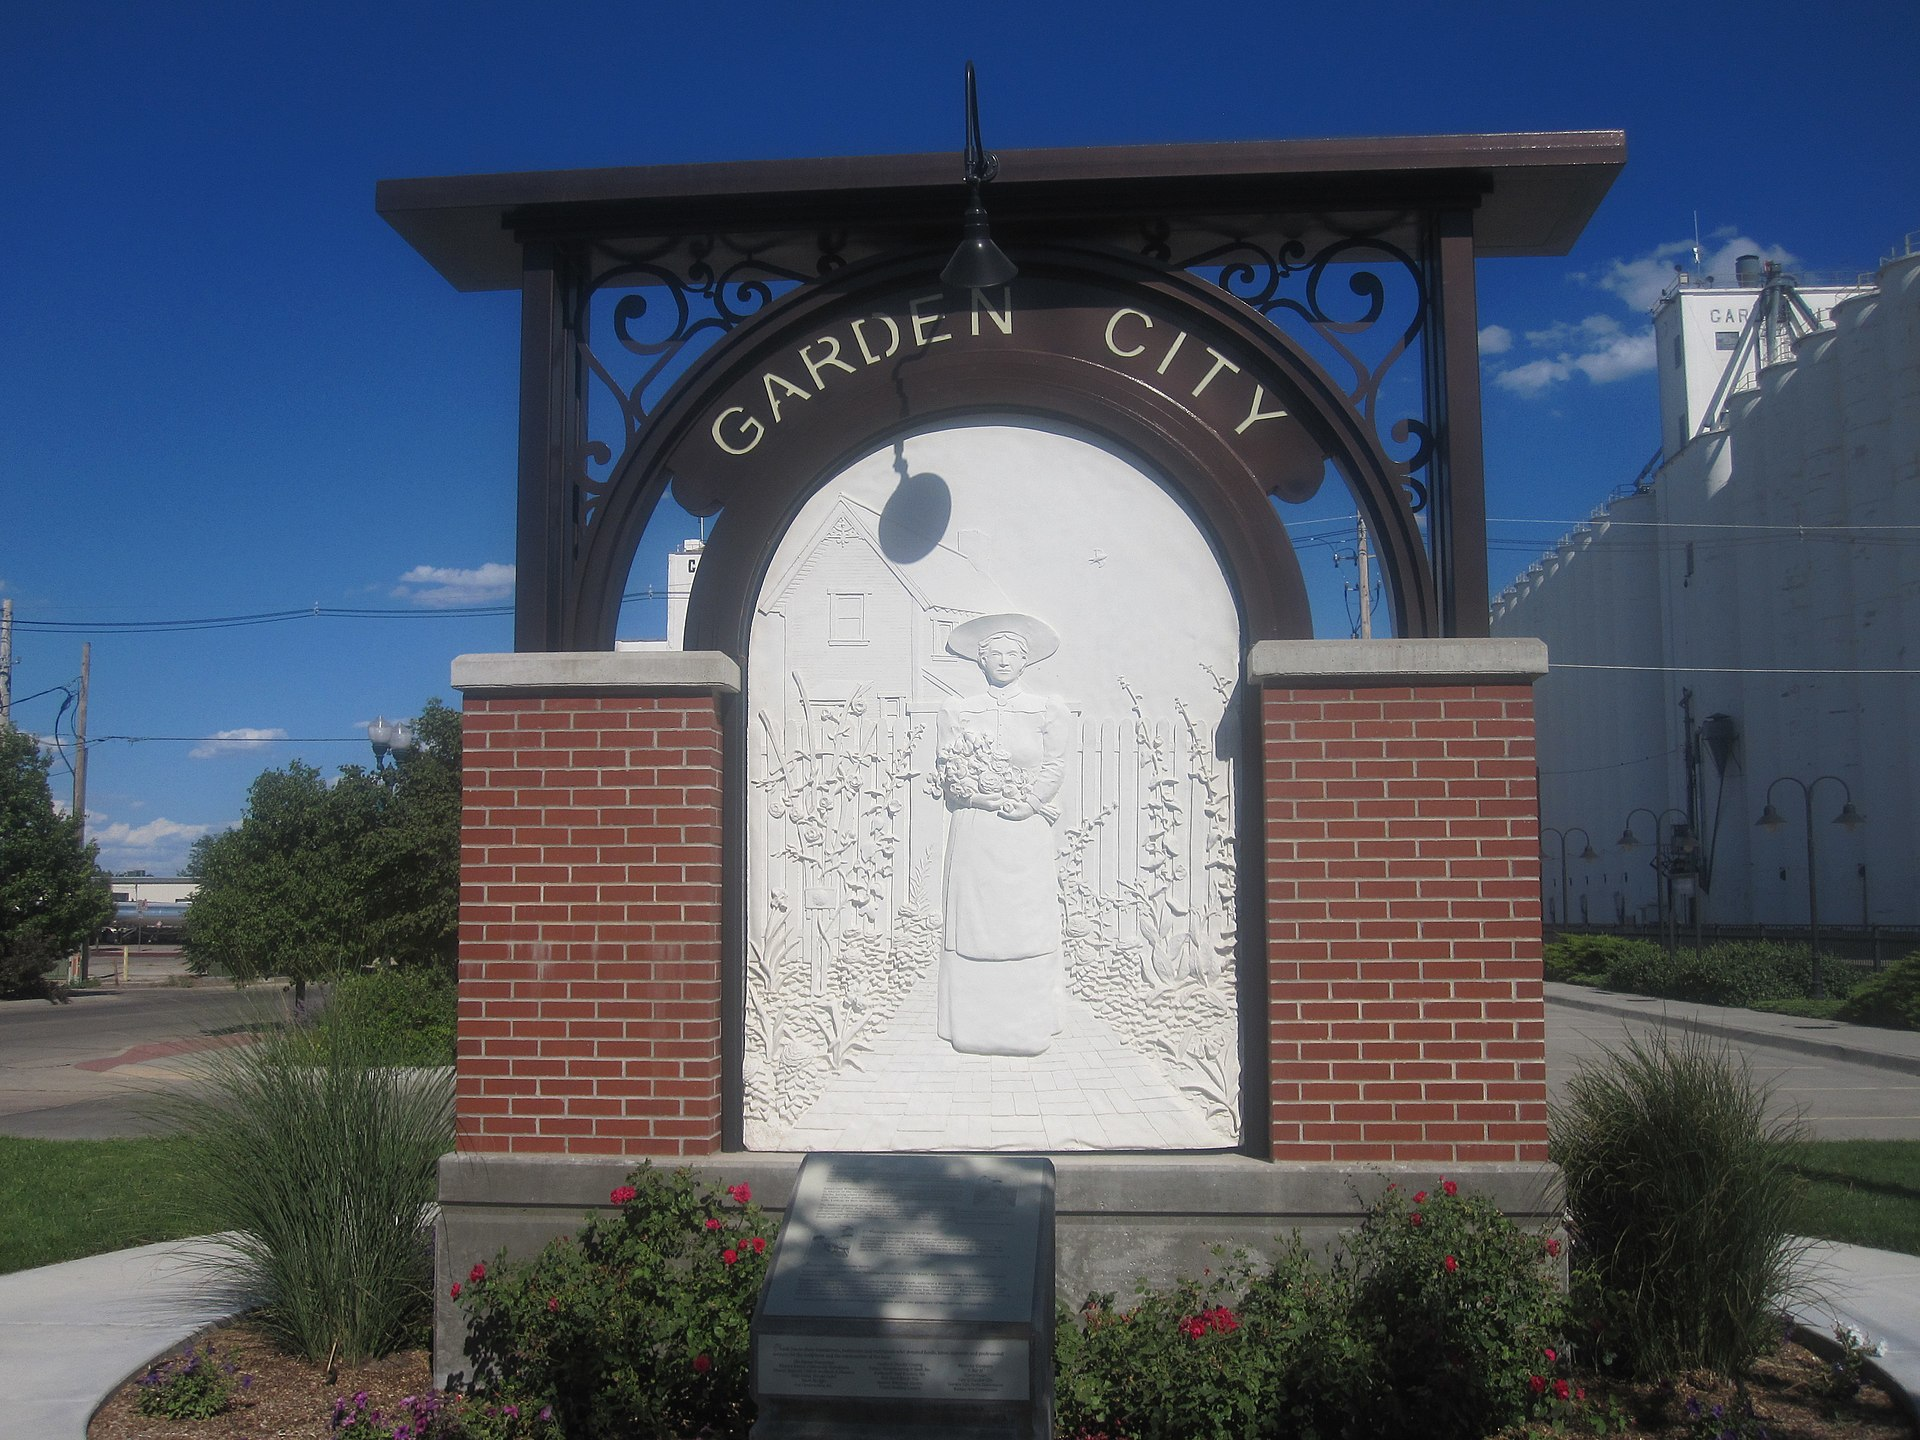 Garden City Kansas Wikipedia